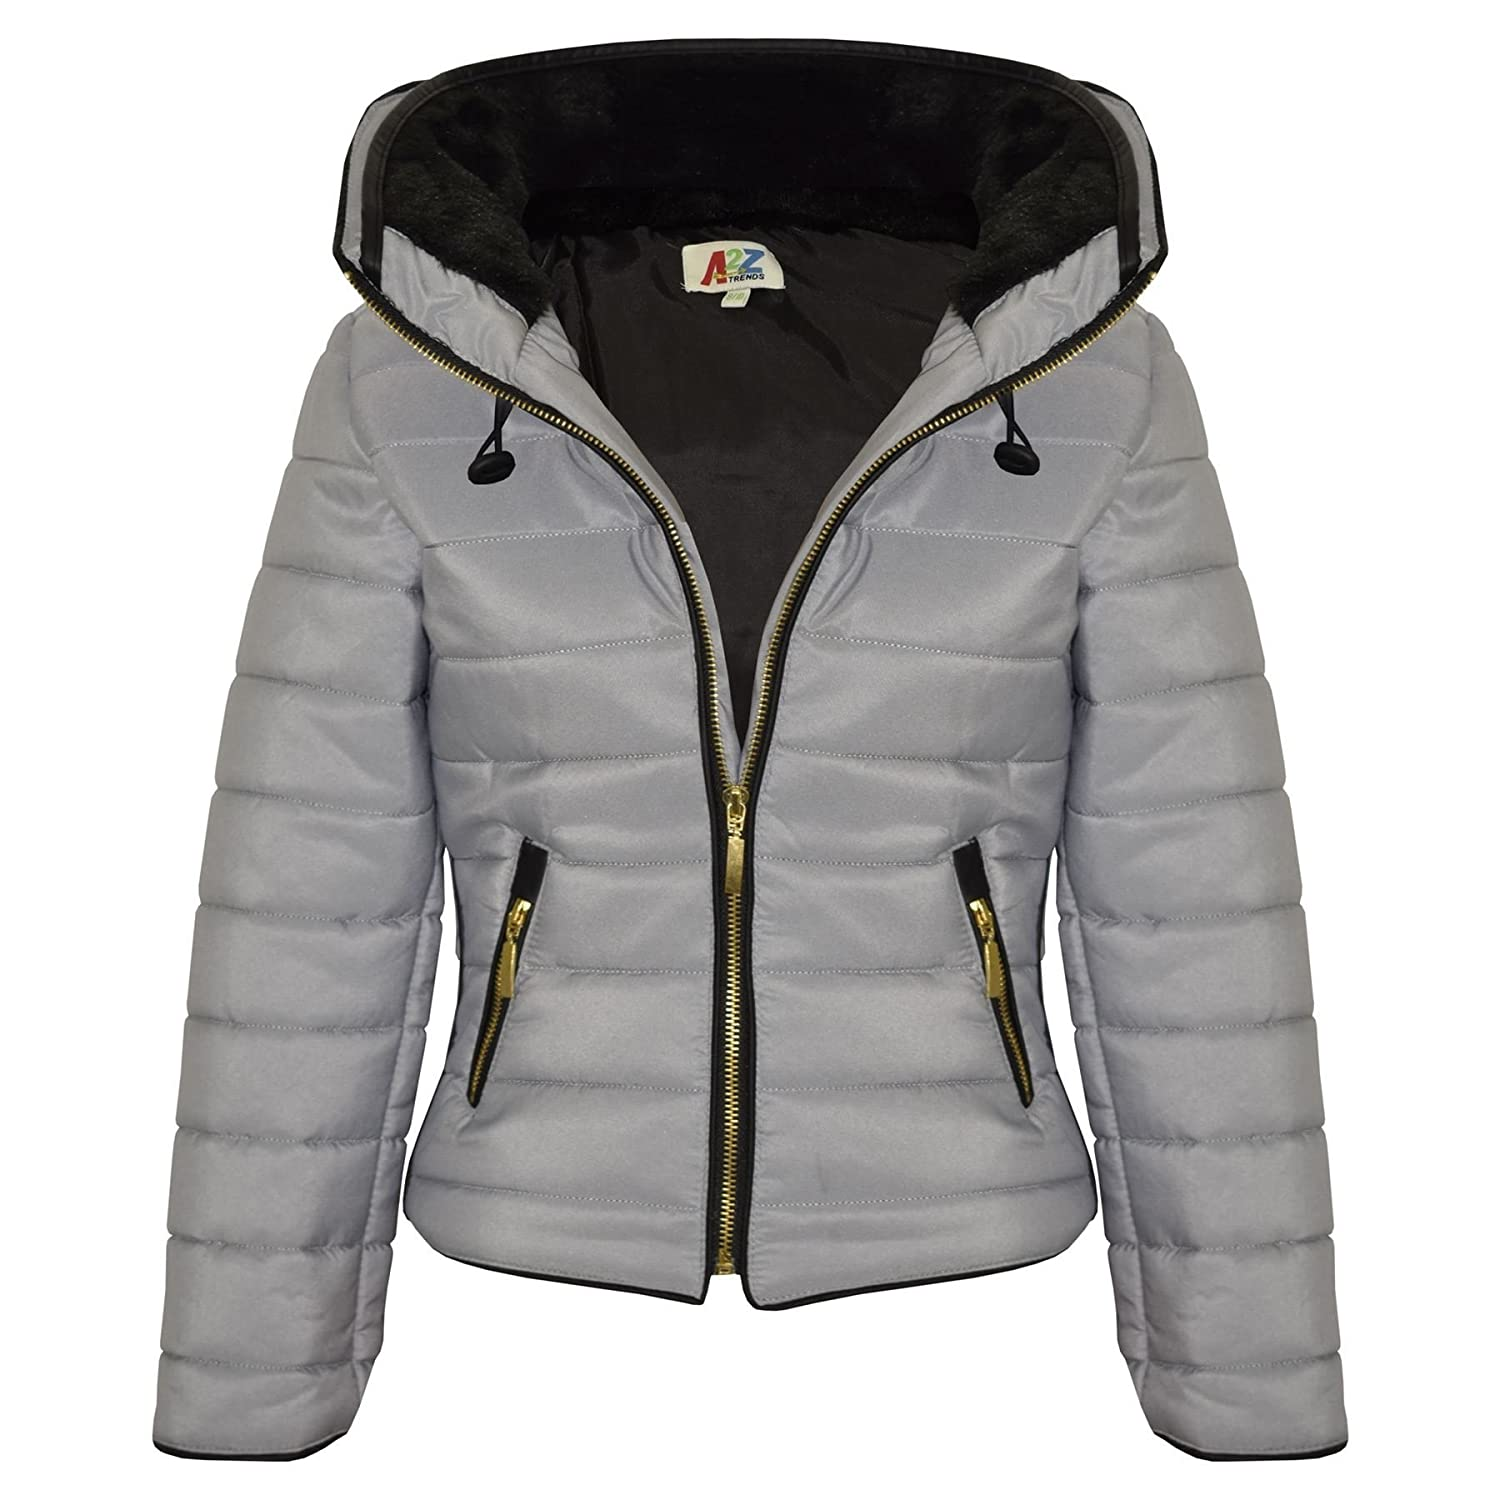 3d7bc5f92 A2Z 4 Kids® Girls Jacket Kids Stylish Padded Silver Puffer Bubble Faux Fur  Collar Quilted Warm Thick Coat Jackets Age 3 4 5 6 7 8 9 10 11 12 13 Years